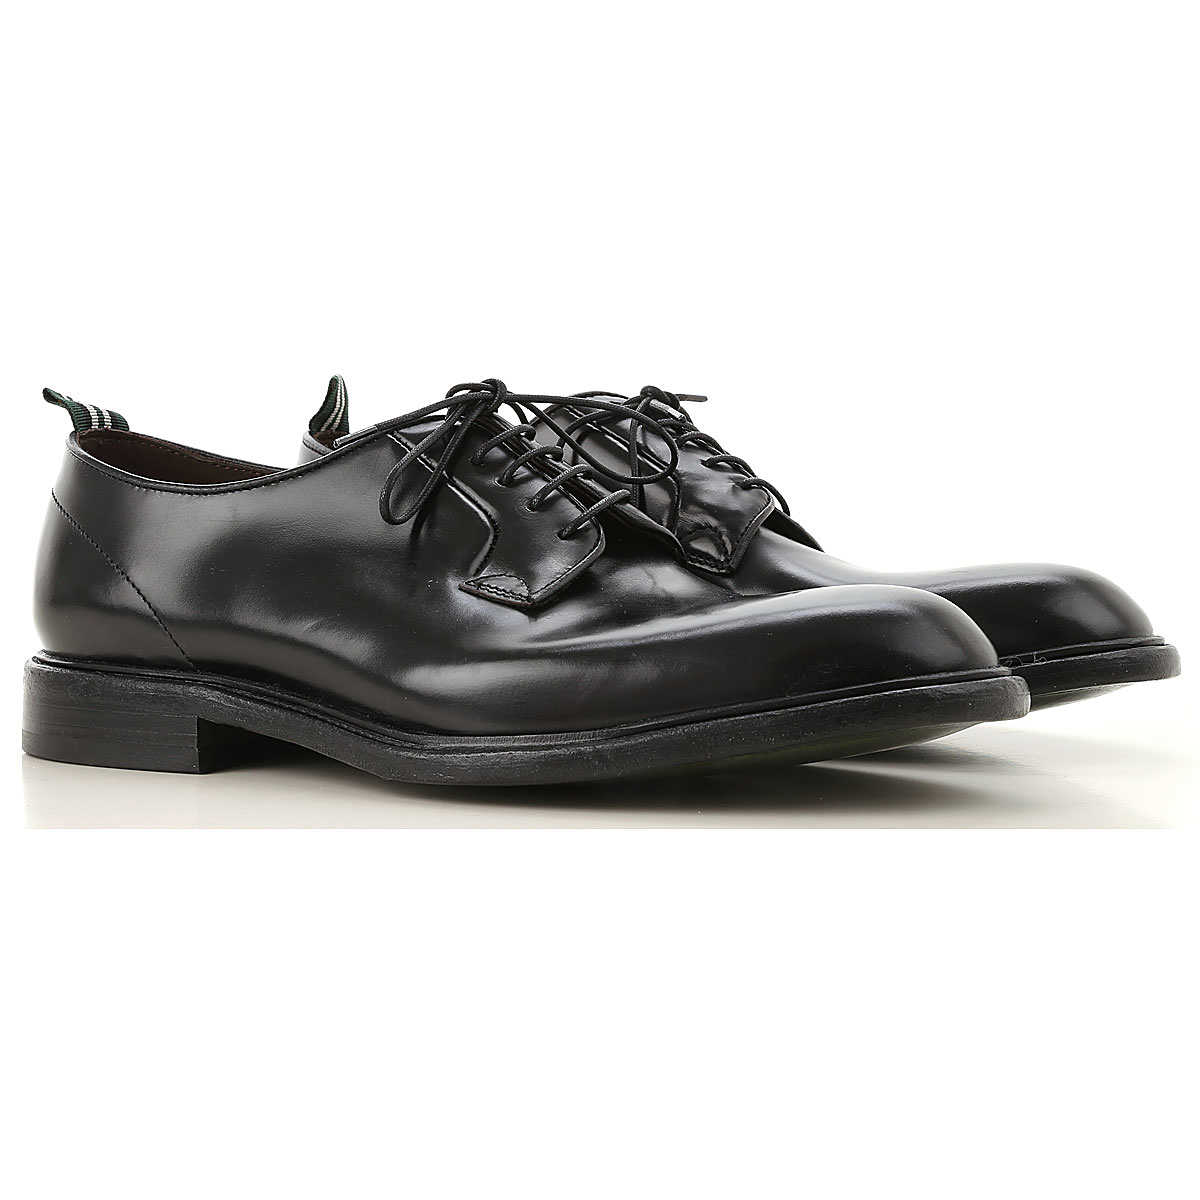 Green George Lace Up Shoes for Men Oxfords Derbies and Brogues On Sale DK - GOOFASH - Mens FORMAL SHOES